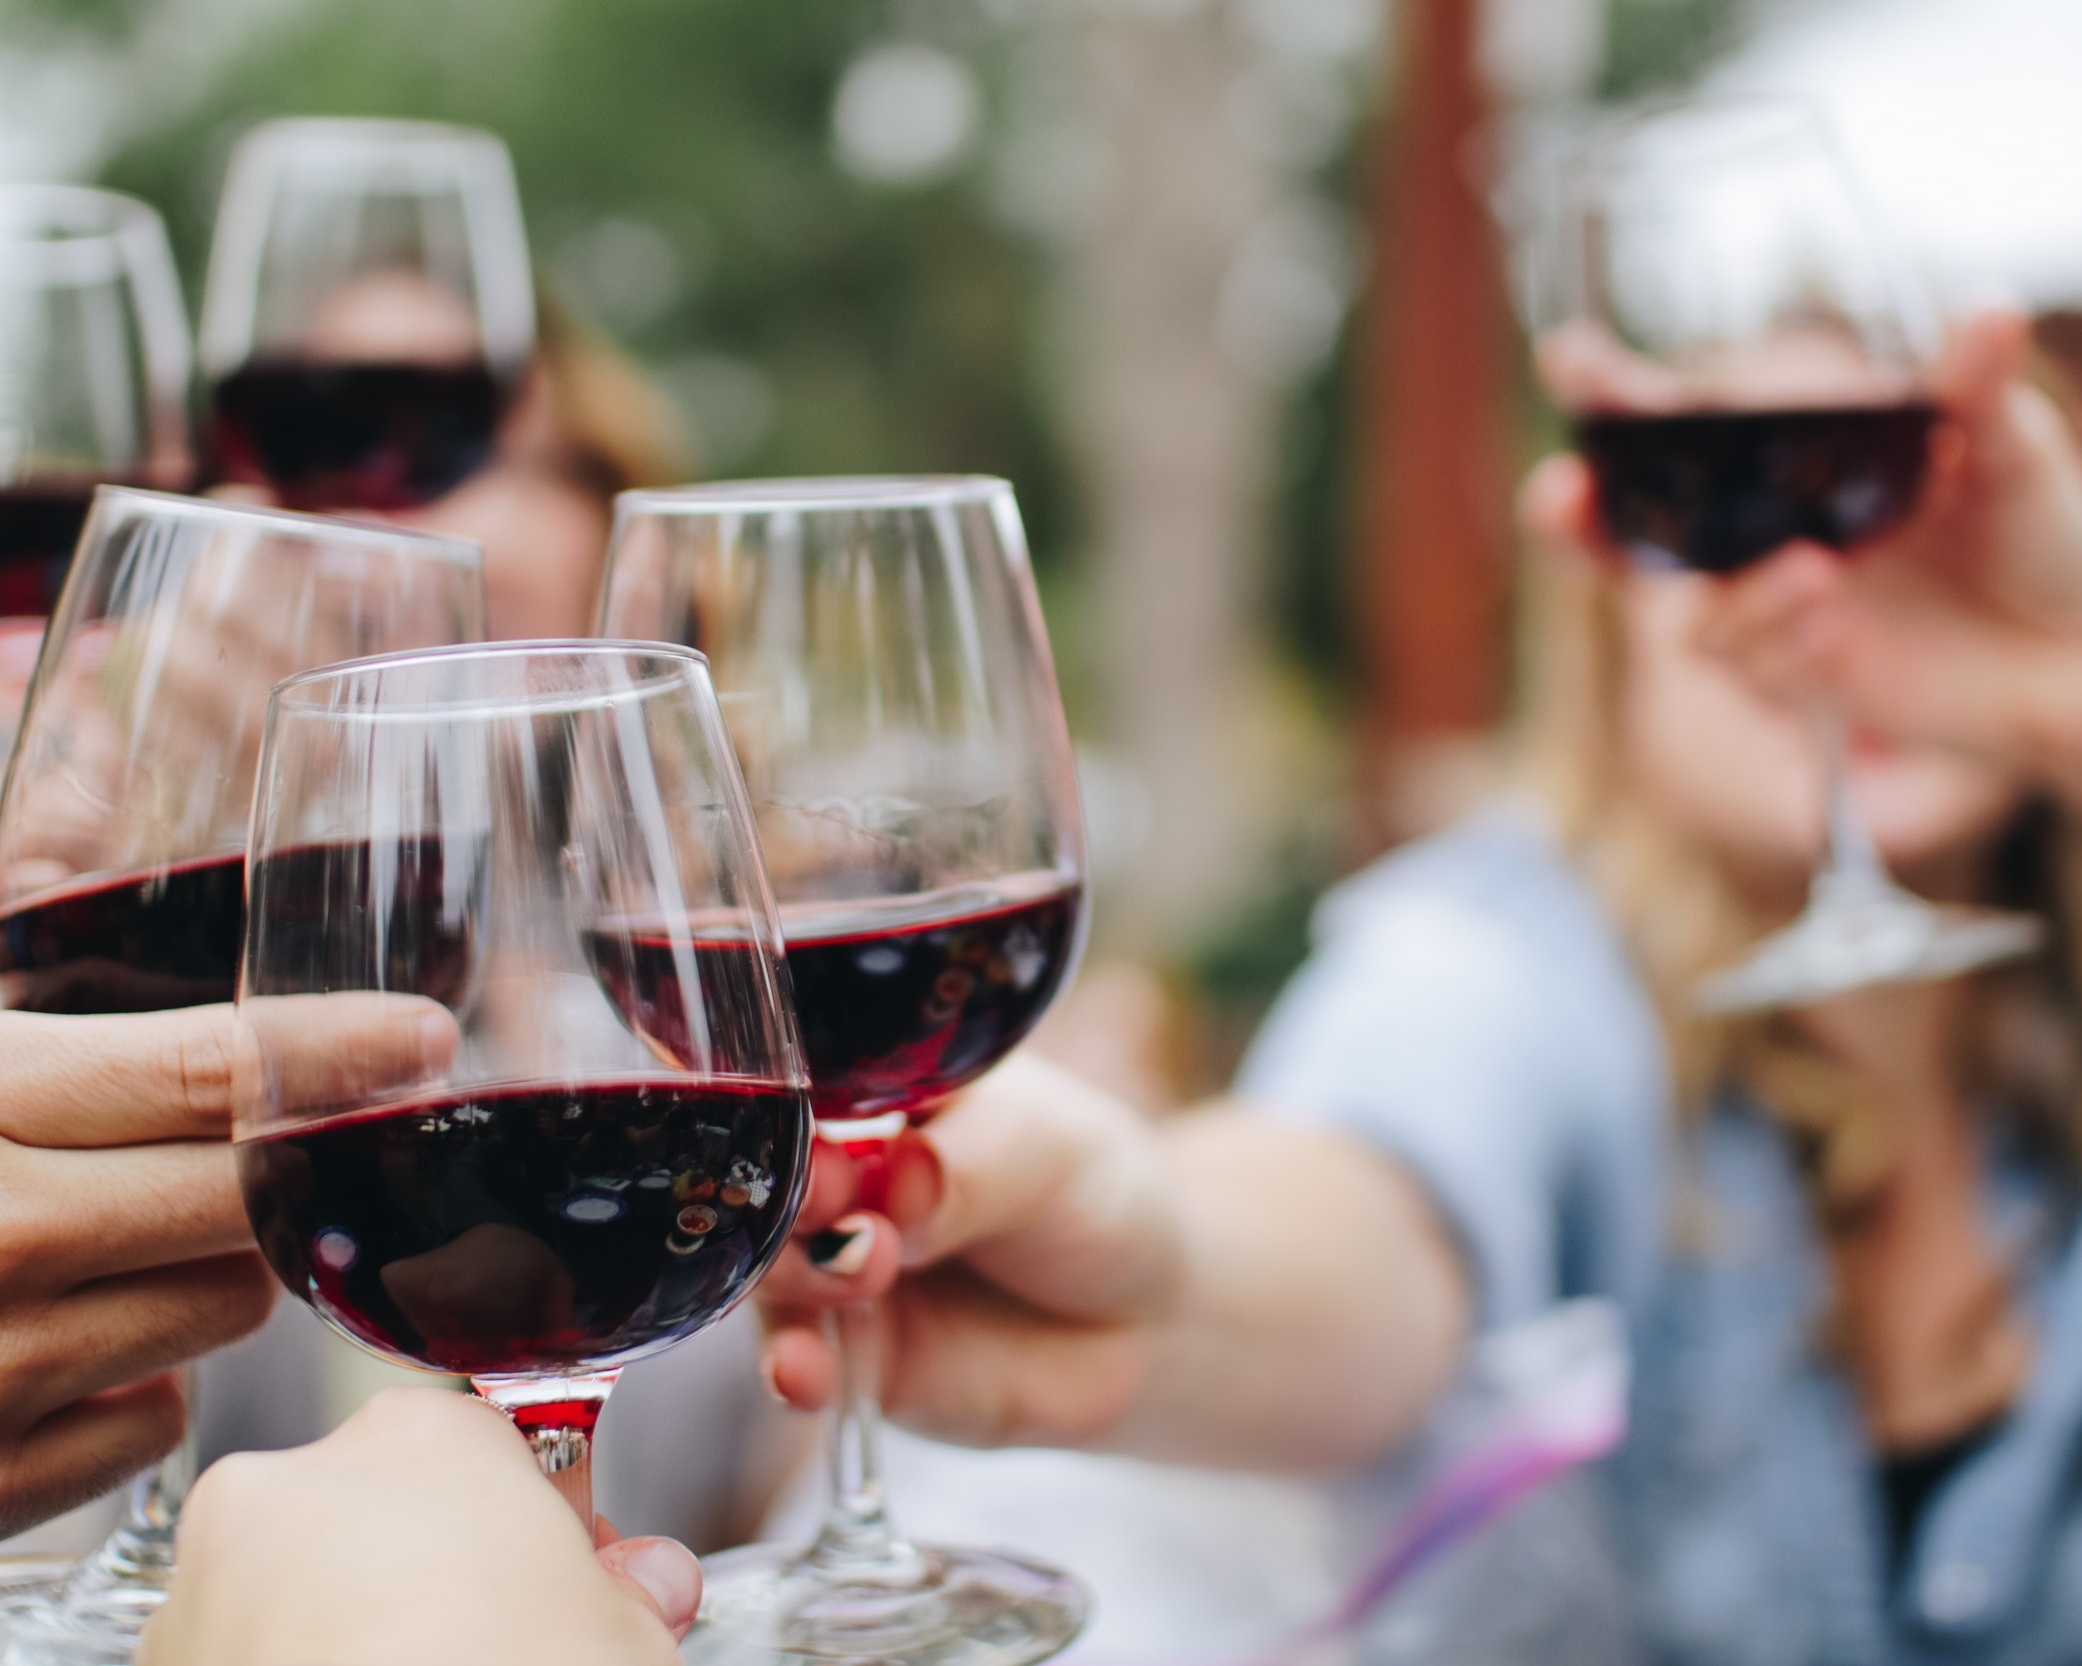 Wine Tasting - A visit to Santa Barbara isn't complete without sampling the local wine! Wander over to the nearby Funk Zone, home to numerous tasting rooms, or book a tour to visit the Santa Ynez Valley Wine Trail, just over the pass. Stop by the front desk for more info.